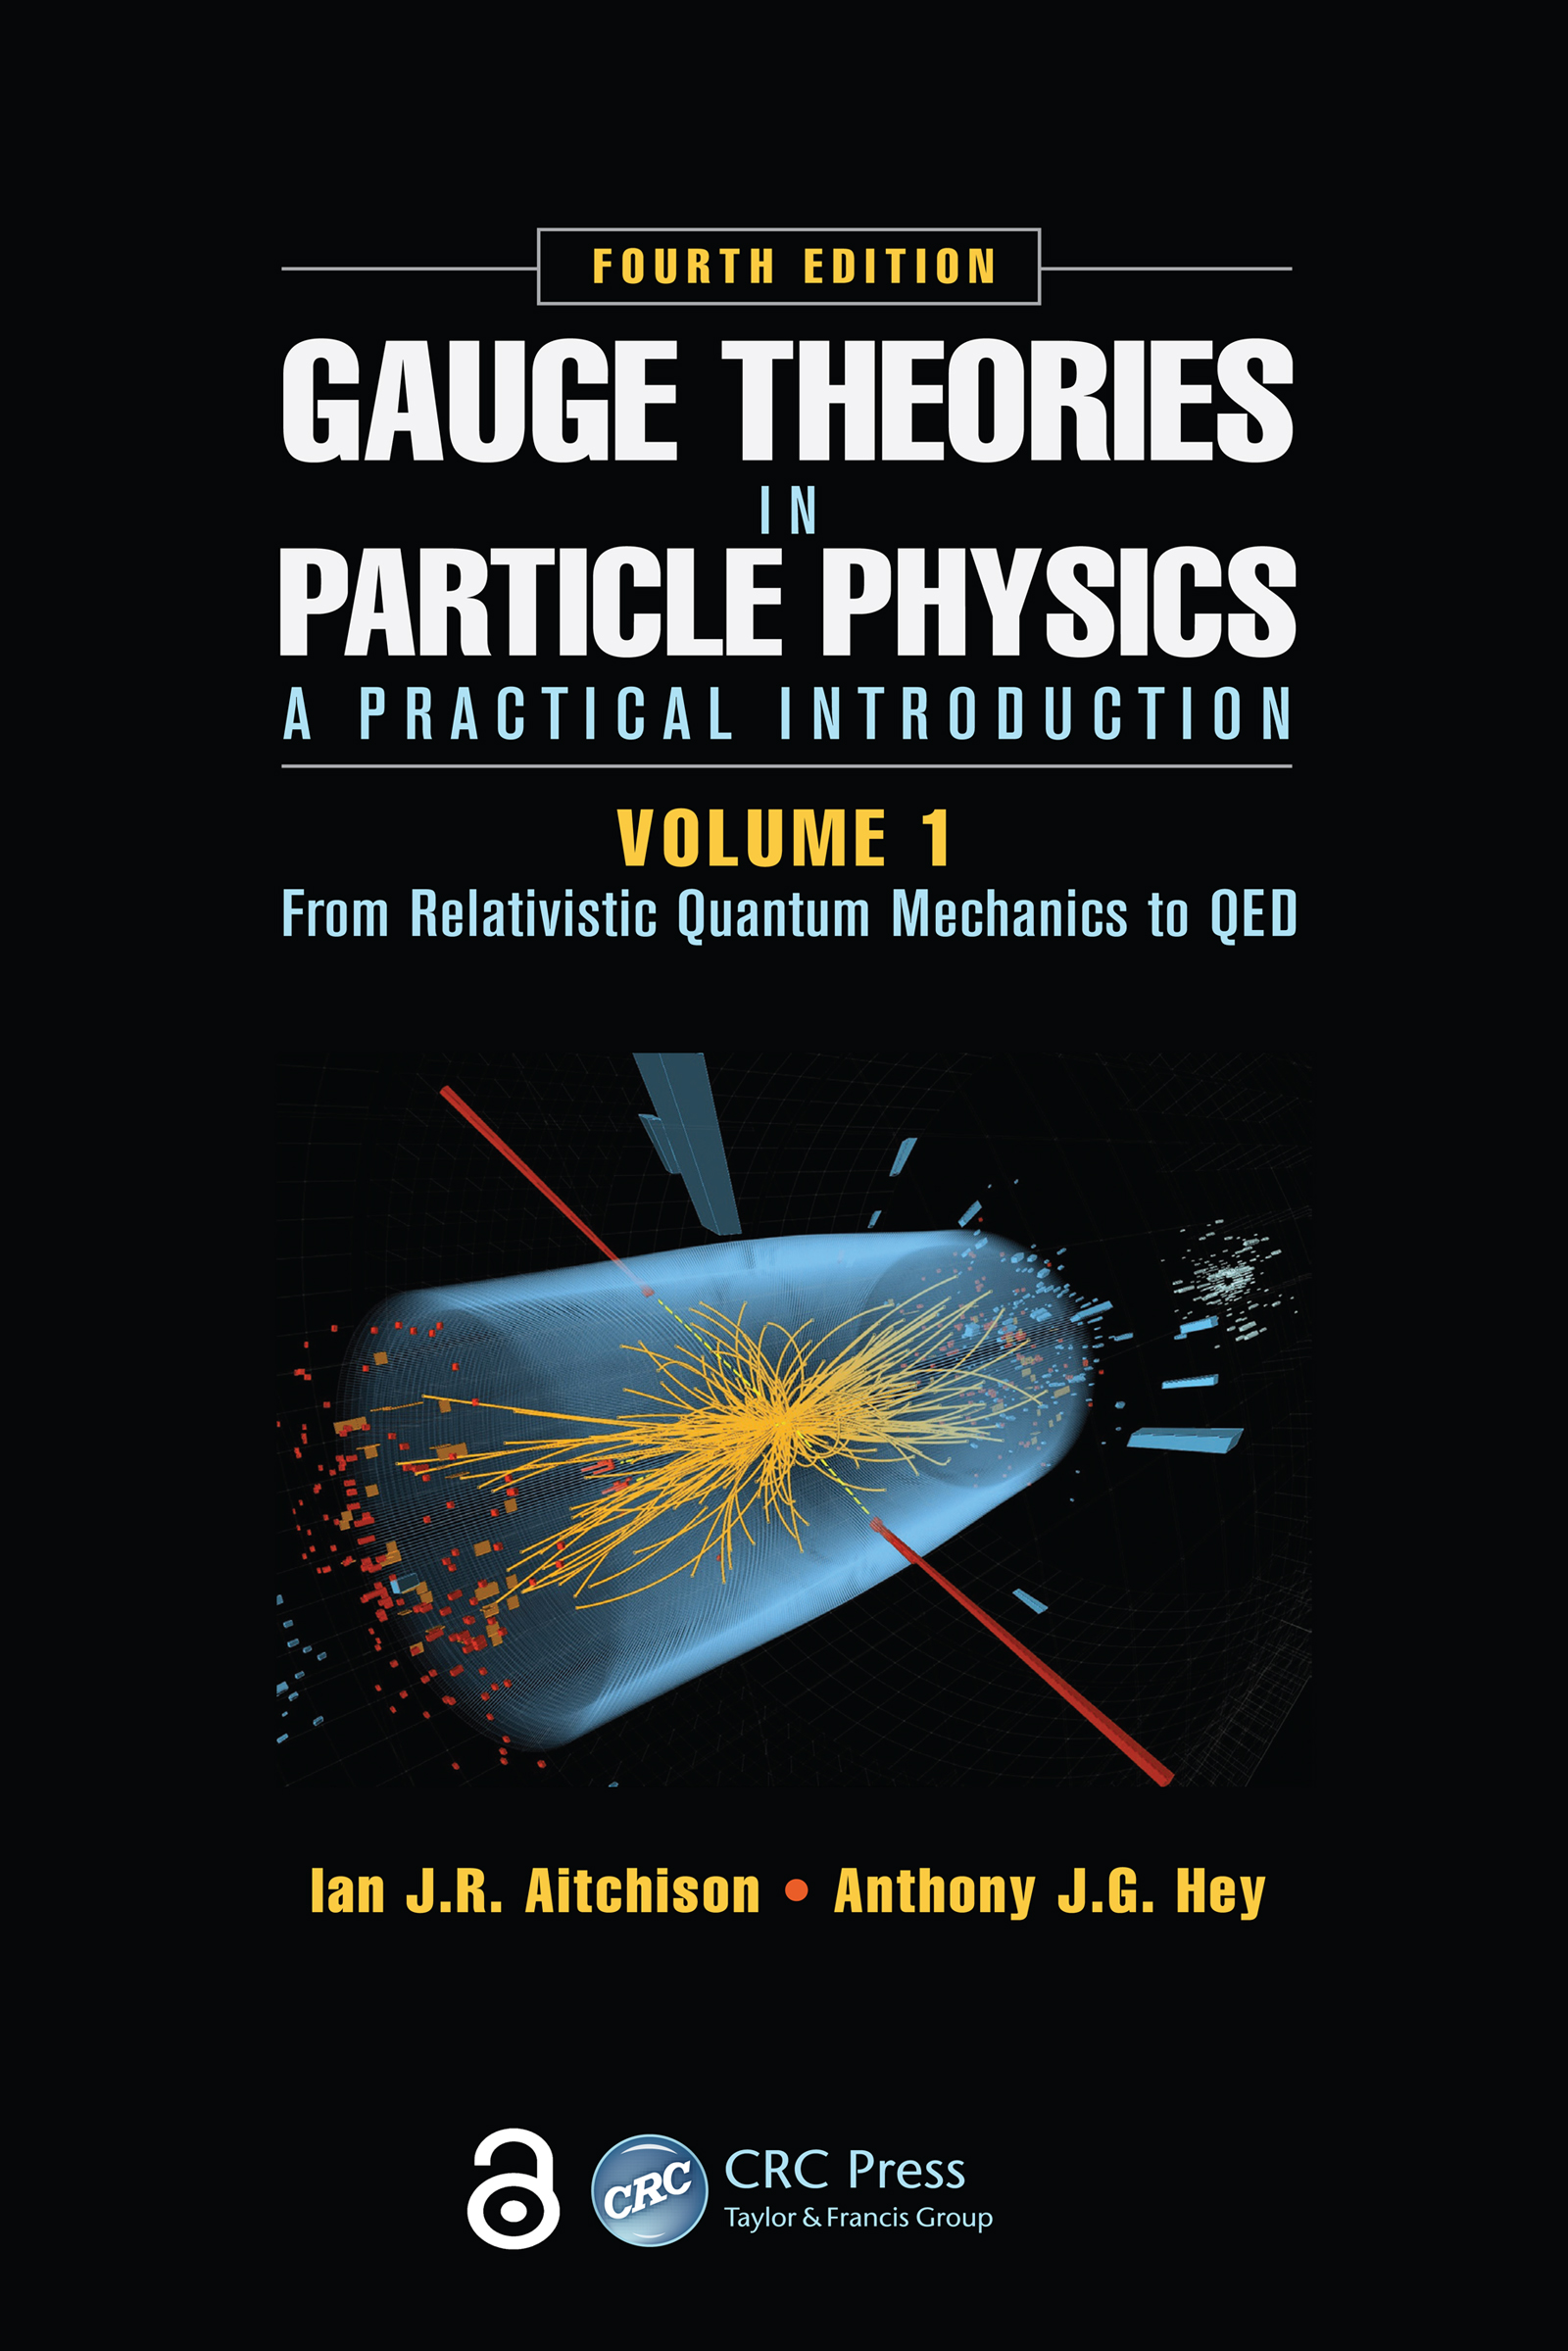 Gauge Theories in Particle Physics: A Practical Introduction, Volume 1:  From Relativistic Quantum Mechanics to QED, Fourth Edition